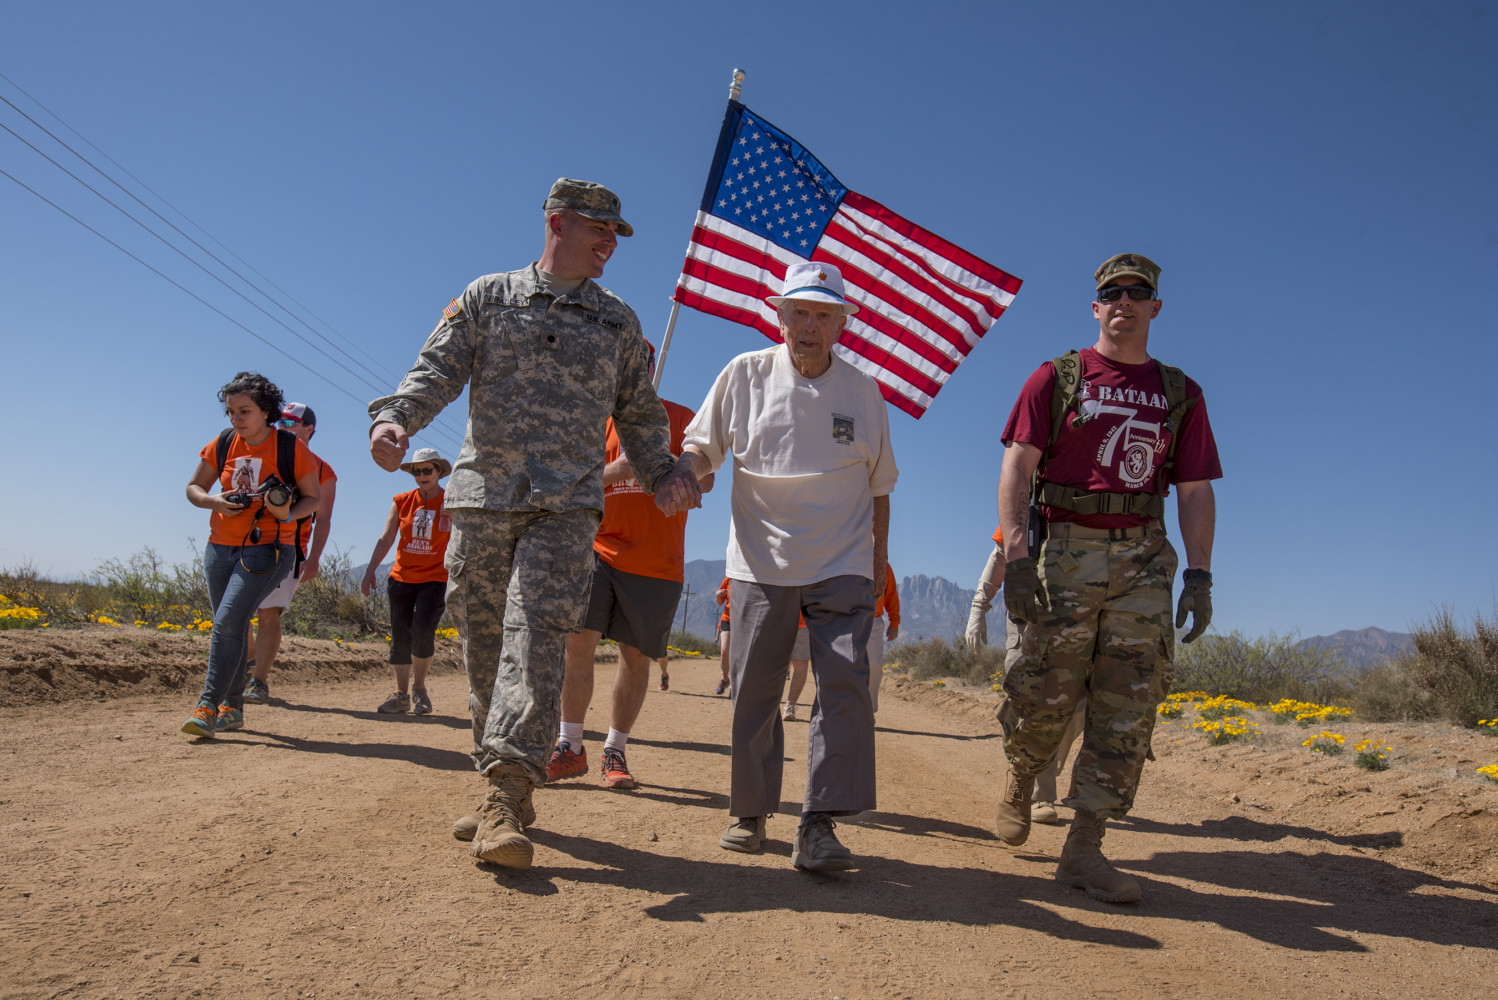 Photo Credit: Staff Sgt.Ken Scar (his awesome photos can be found in pretty much every article about Col. Ben)